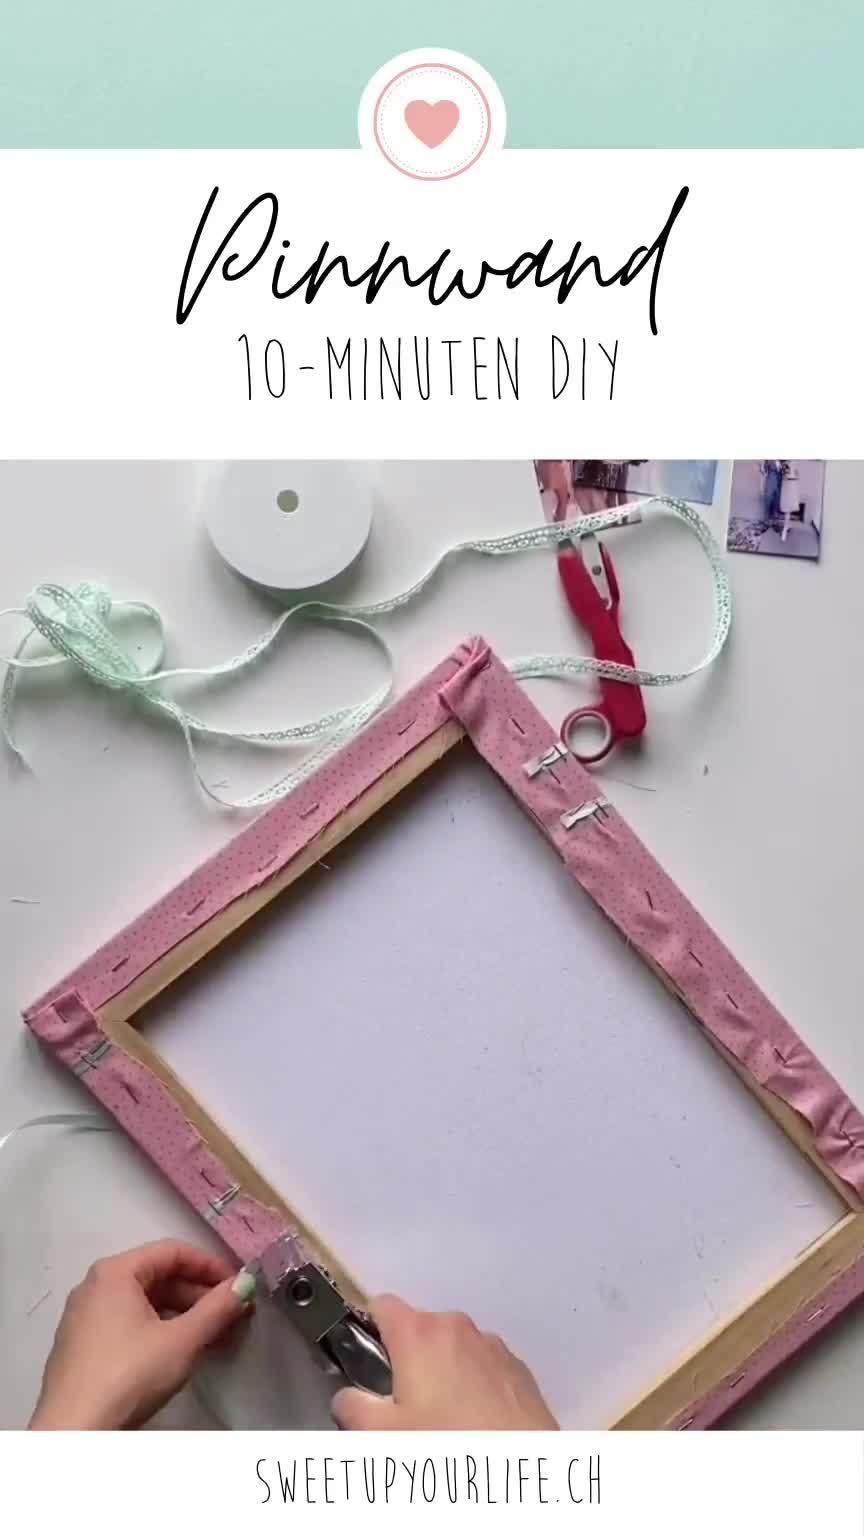 Pinnwand selber machen – 10-Minuten DIY – Sweet Up Your Life